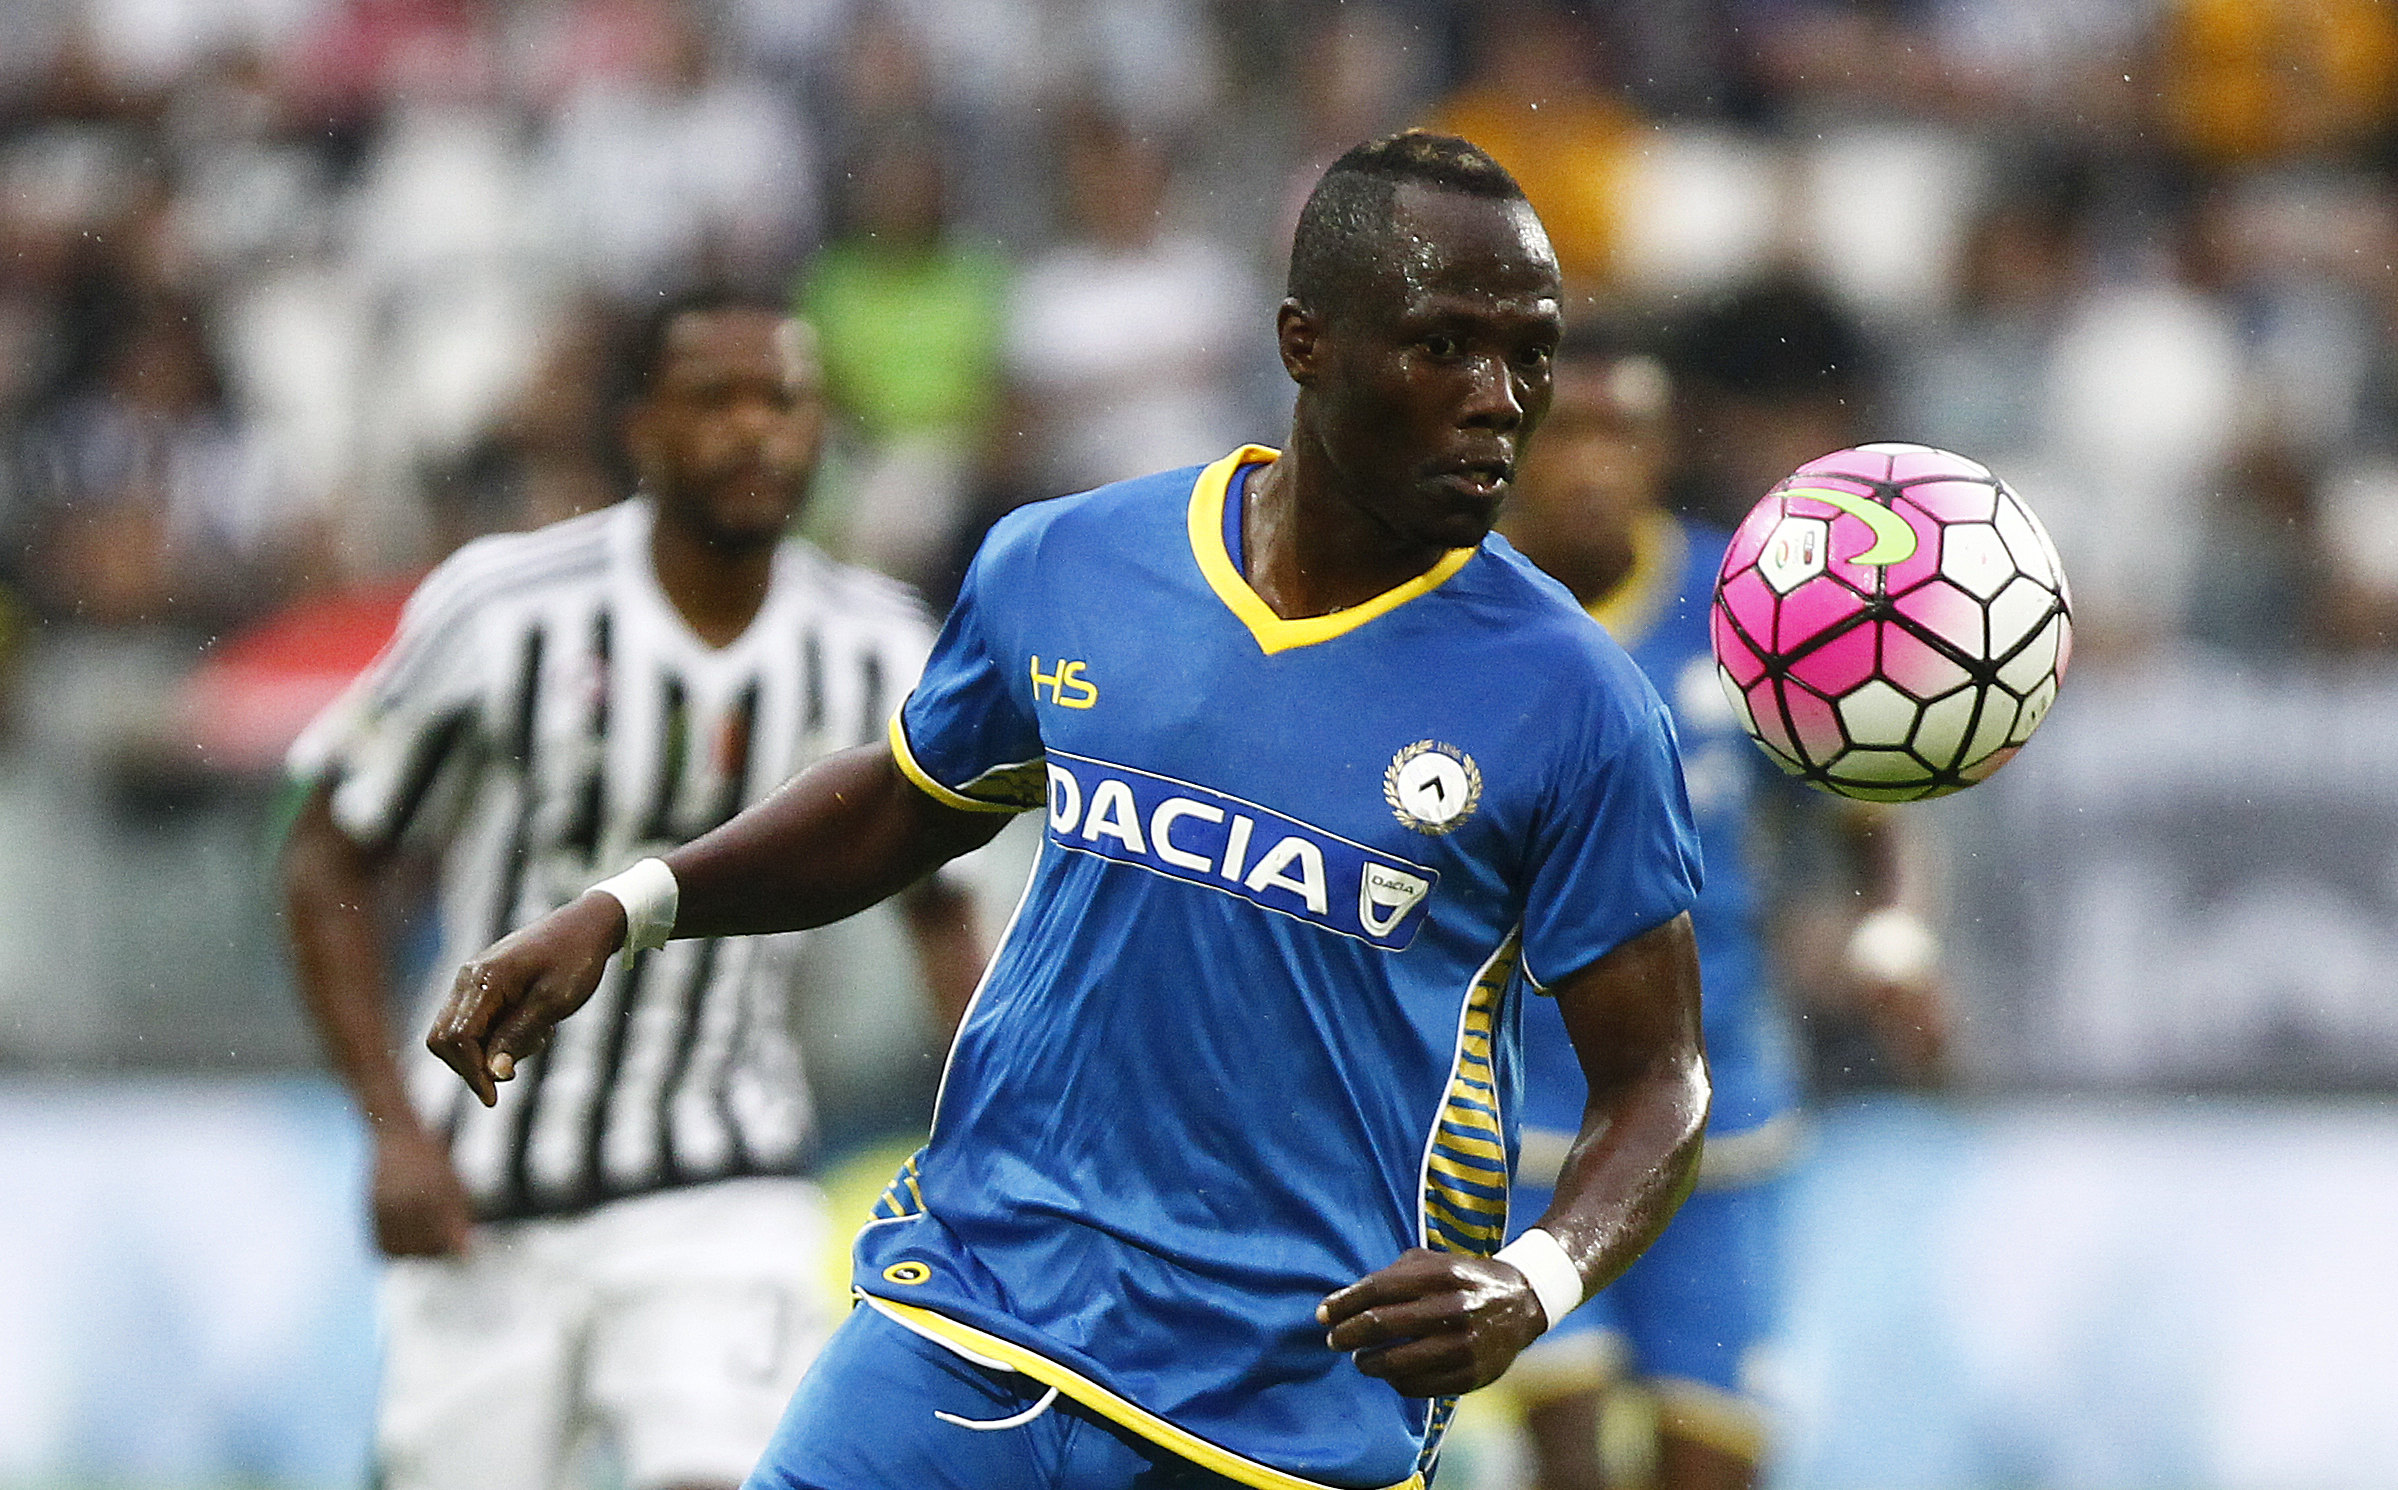 Emmanuel Agyemang Badu could realize his dream of playing in England this summer